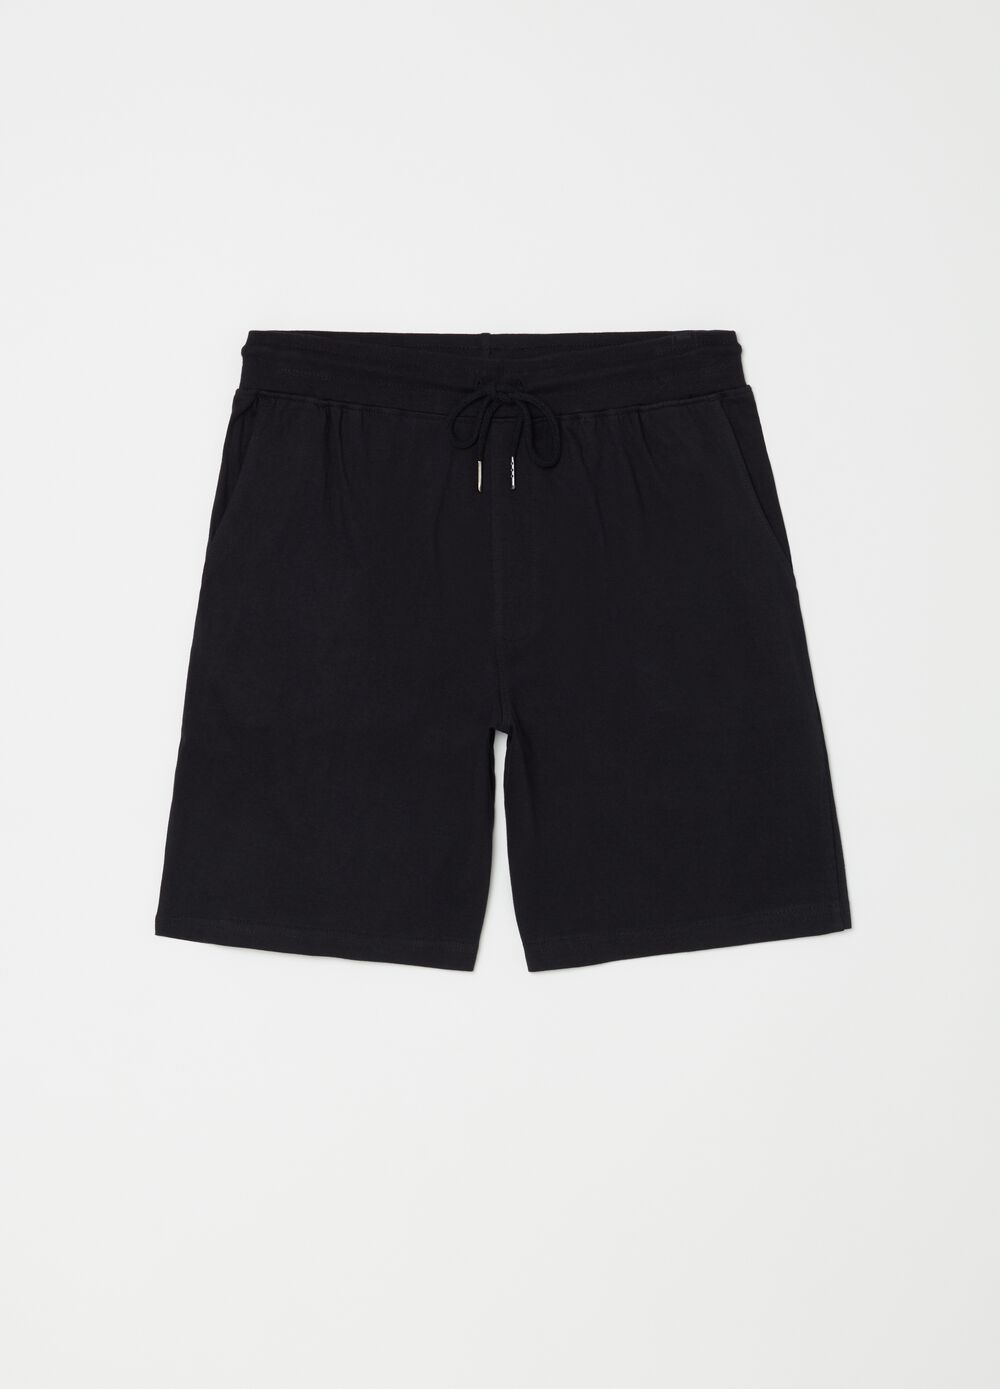 100% cotton pyjama shorts with pockets